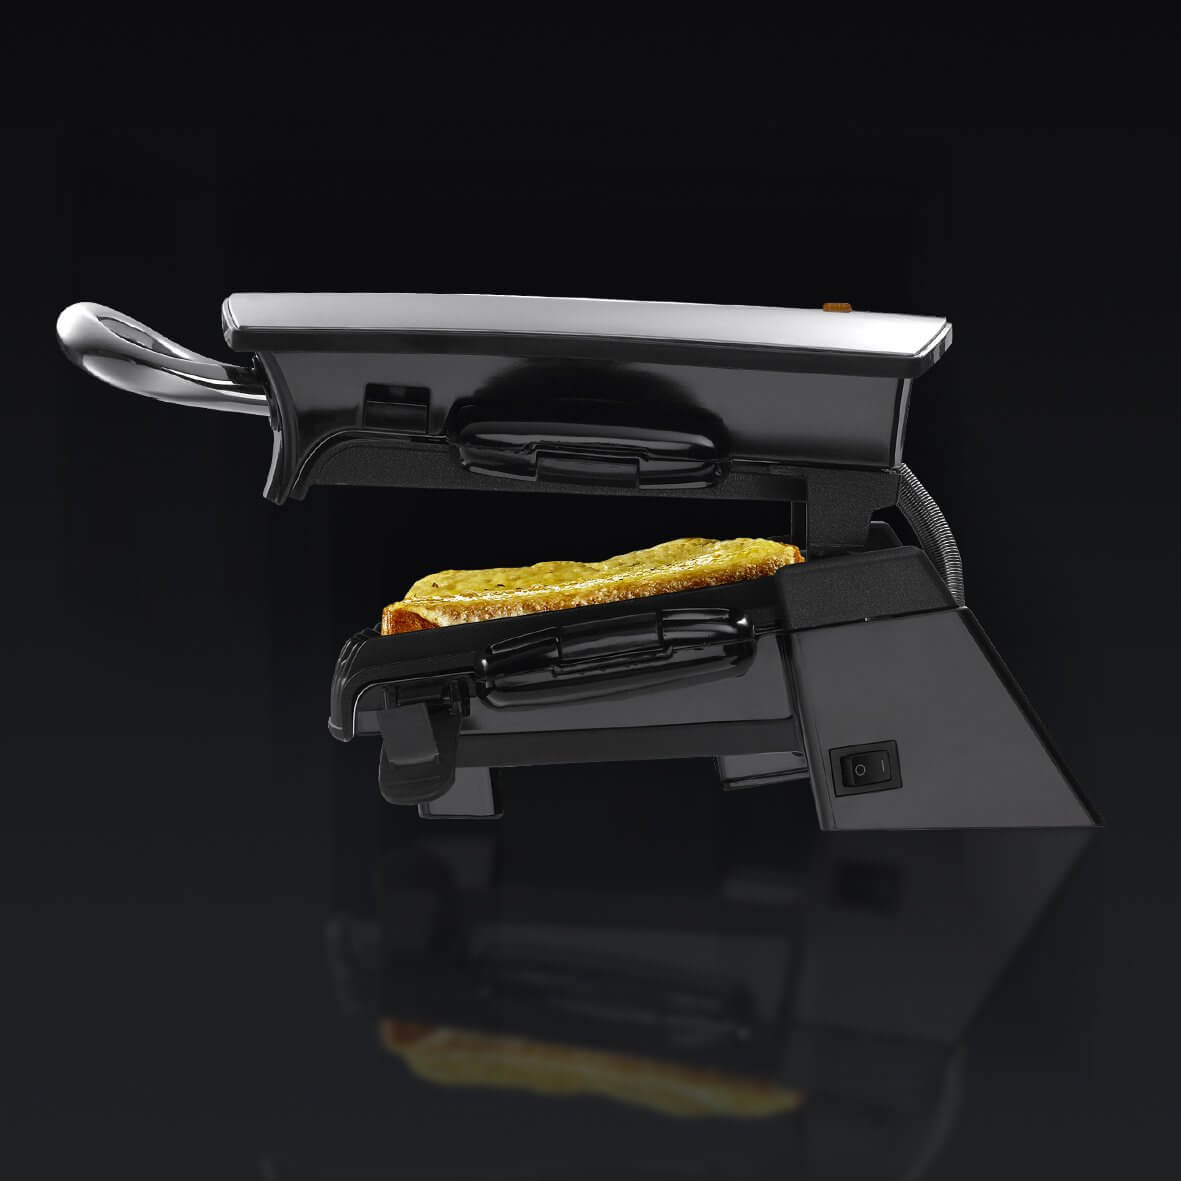 Silver Grill & Melt Grill George Foreman 14525-56